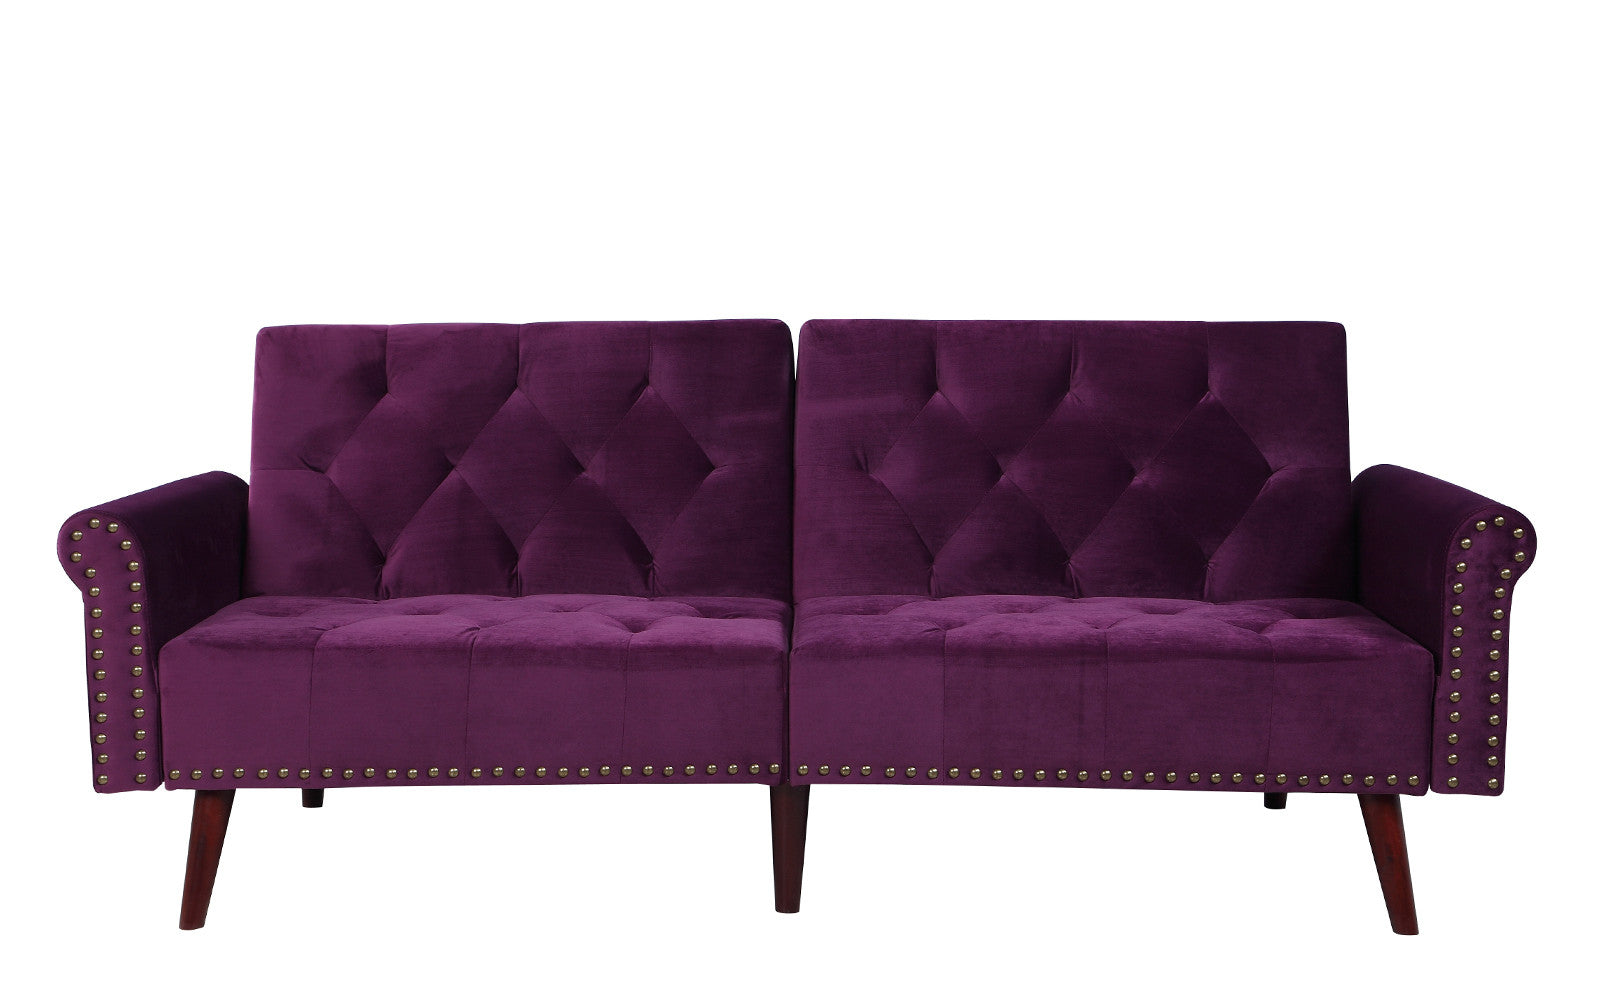 becca modern tufted velvet futon in purple     futons   sofa beds   sleeper sofa  u0026 futon   sofamania  rh   sofamania